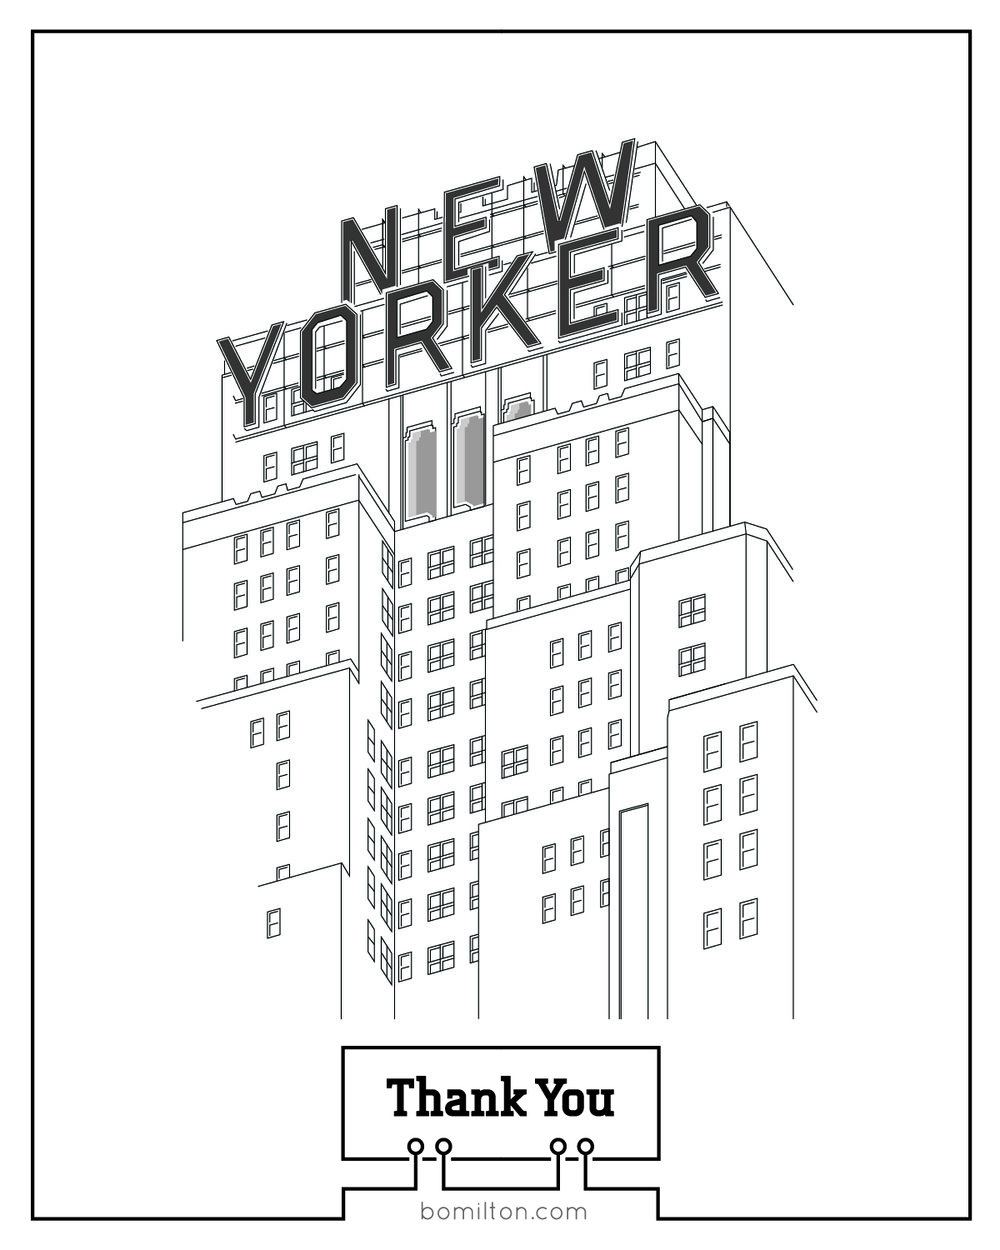 Thank You Card - Front Side